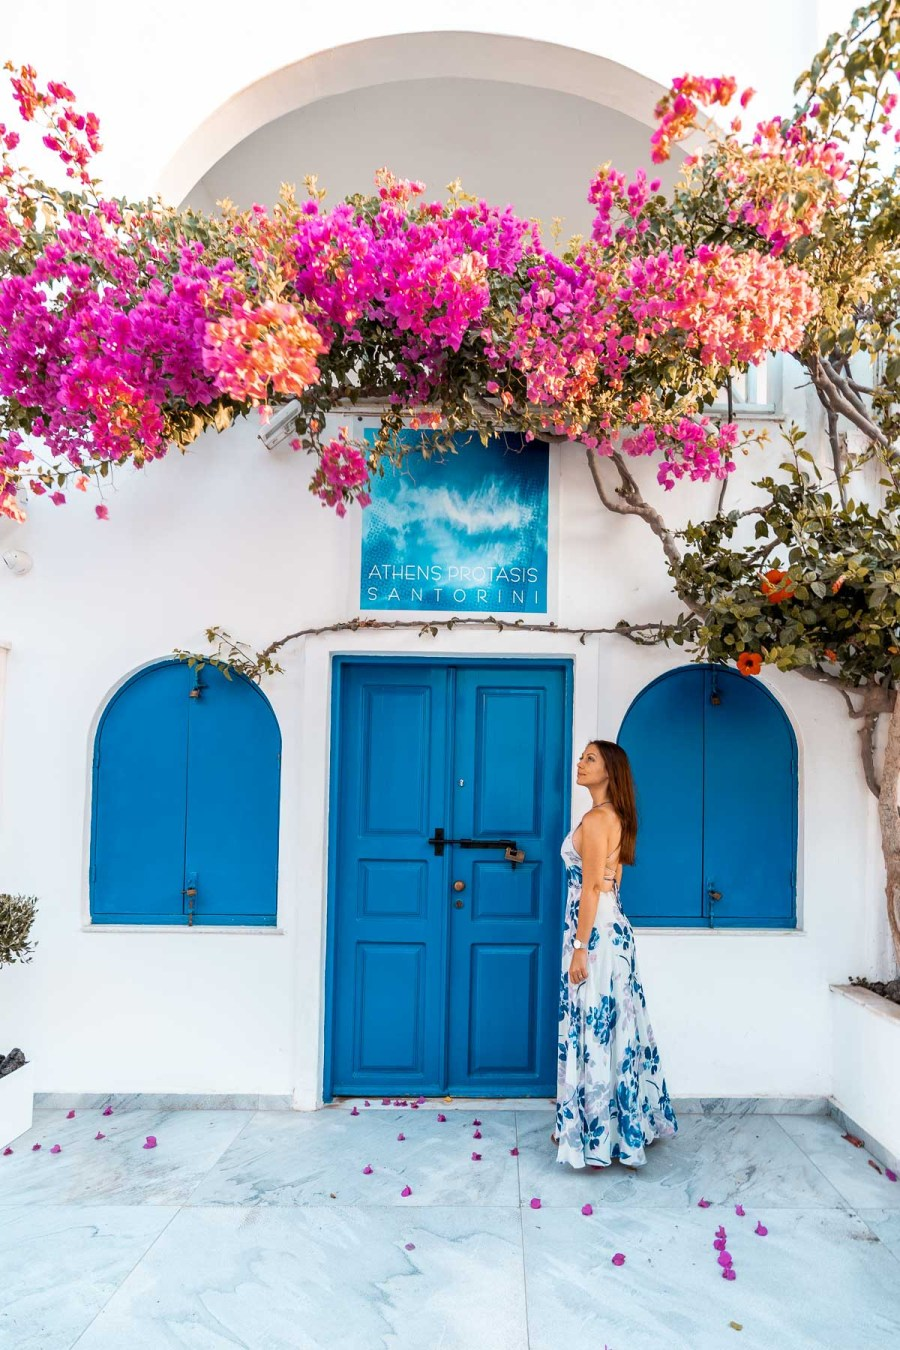 Girl in a blue floral dress standing in front of a blue door with pink flowers in Oia, Santorini